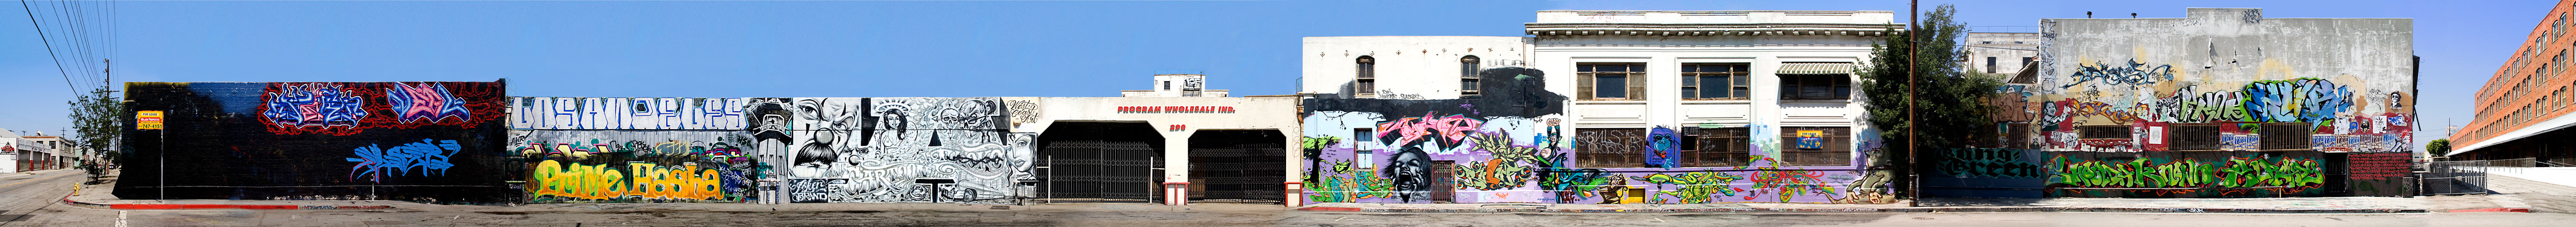 Garey Street, Los Angeles, 2007